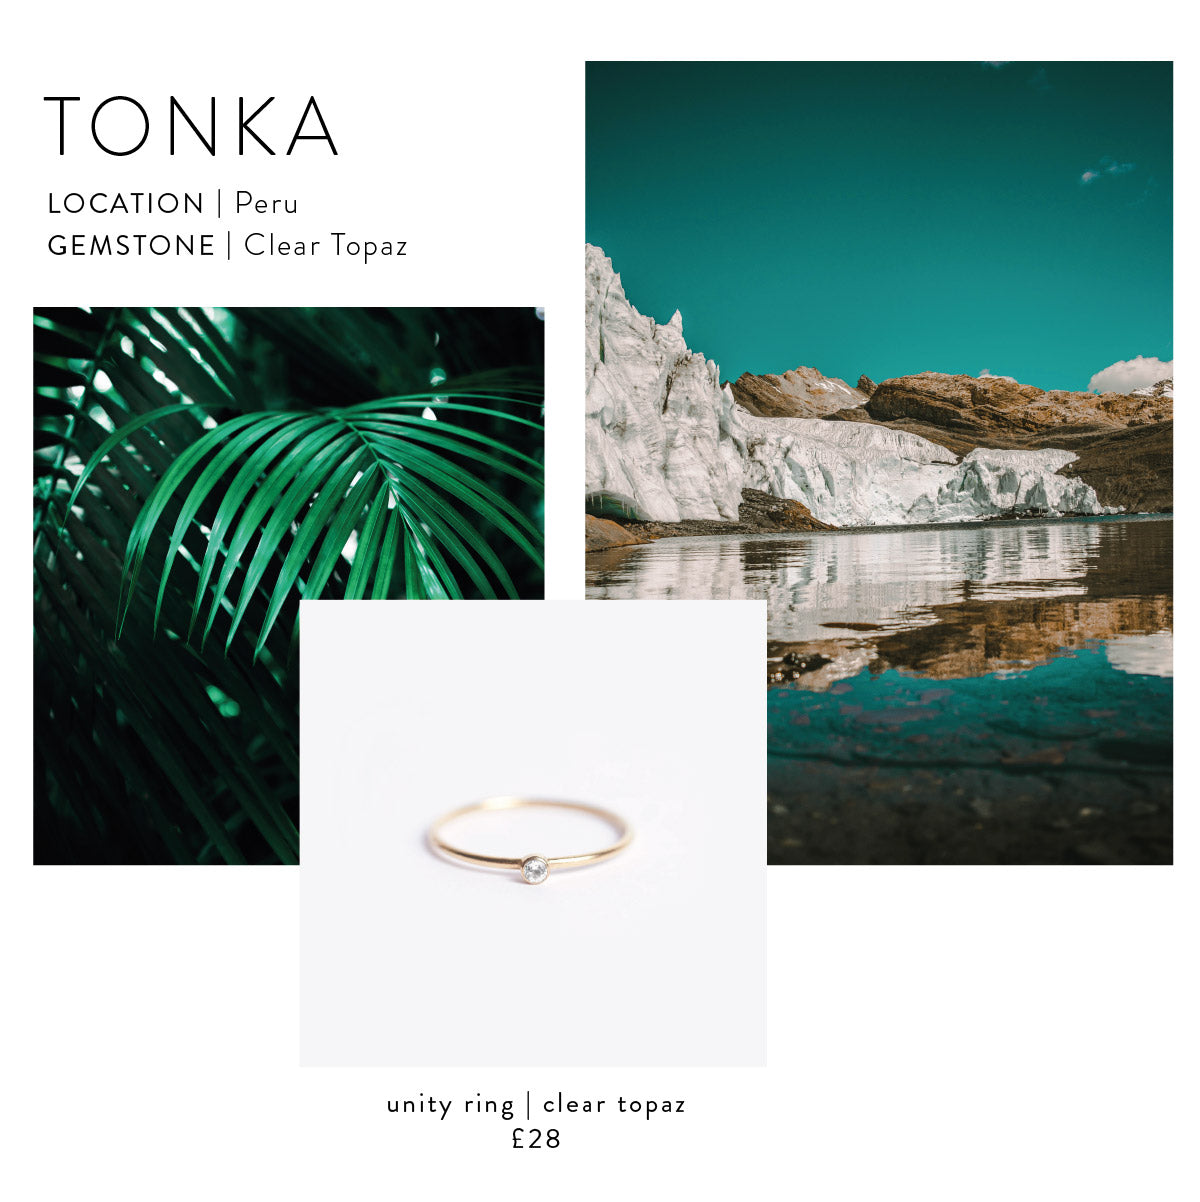 "<a href=""https://wanderlustlife.co.uk/collections/life-store/products/laboratory-fragrance-tonka"">Laboratory Fragrance 